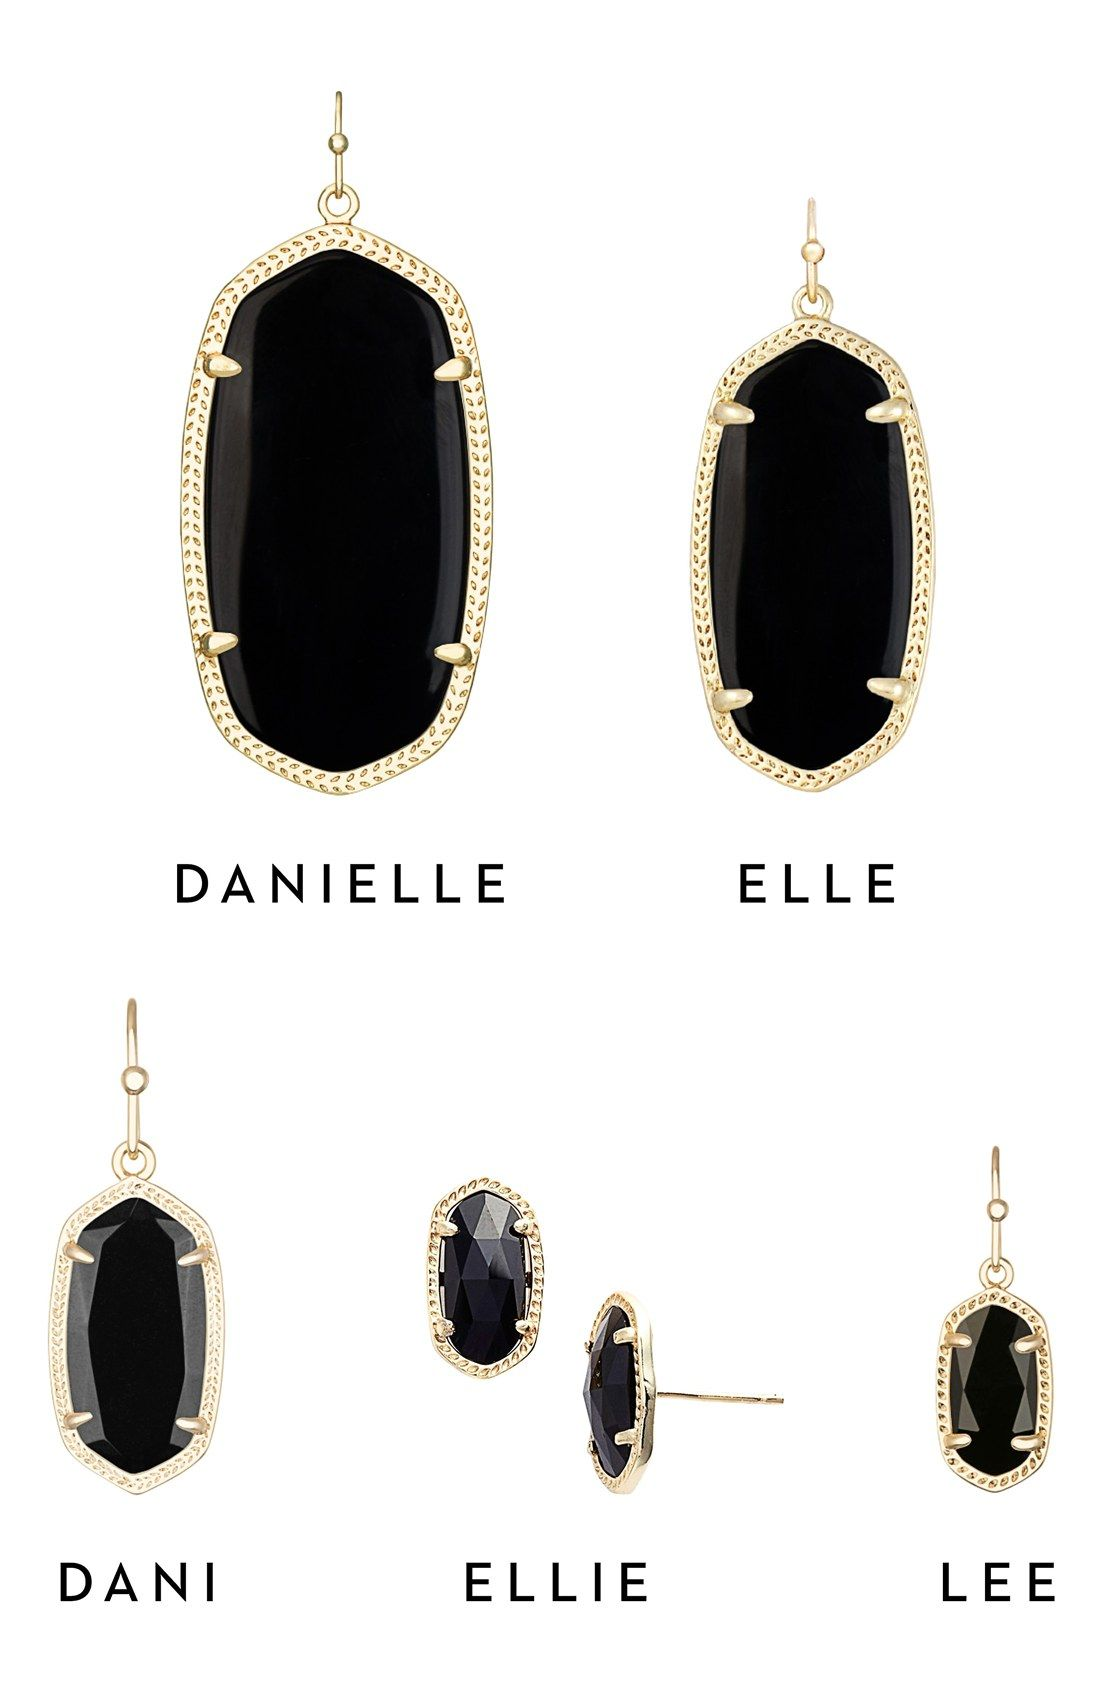 8e253e8c2 Kendra Scott earring sizes (Danielle, Ellie, Dani, Ellie, Lee ...